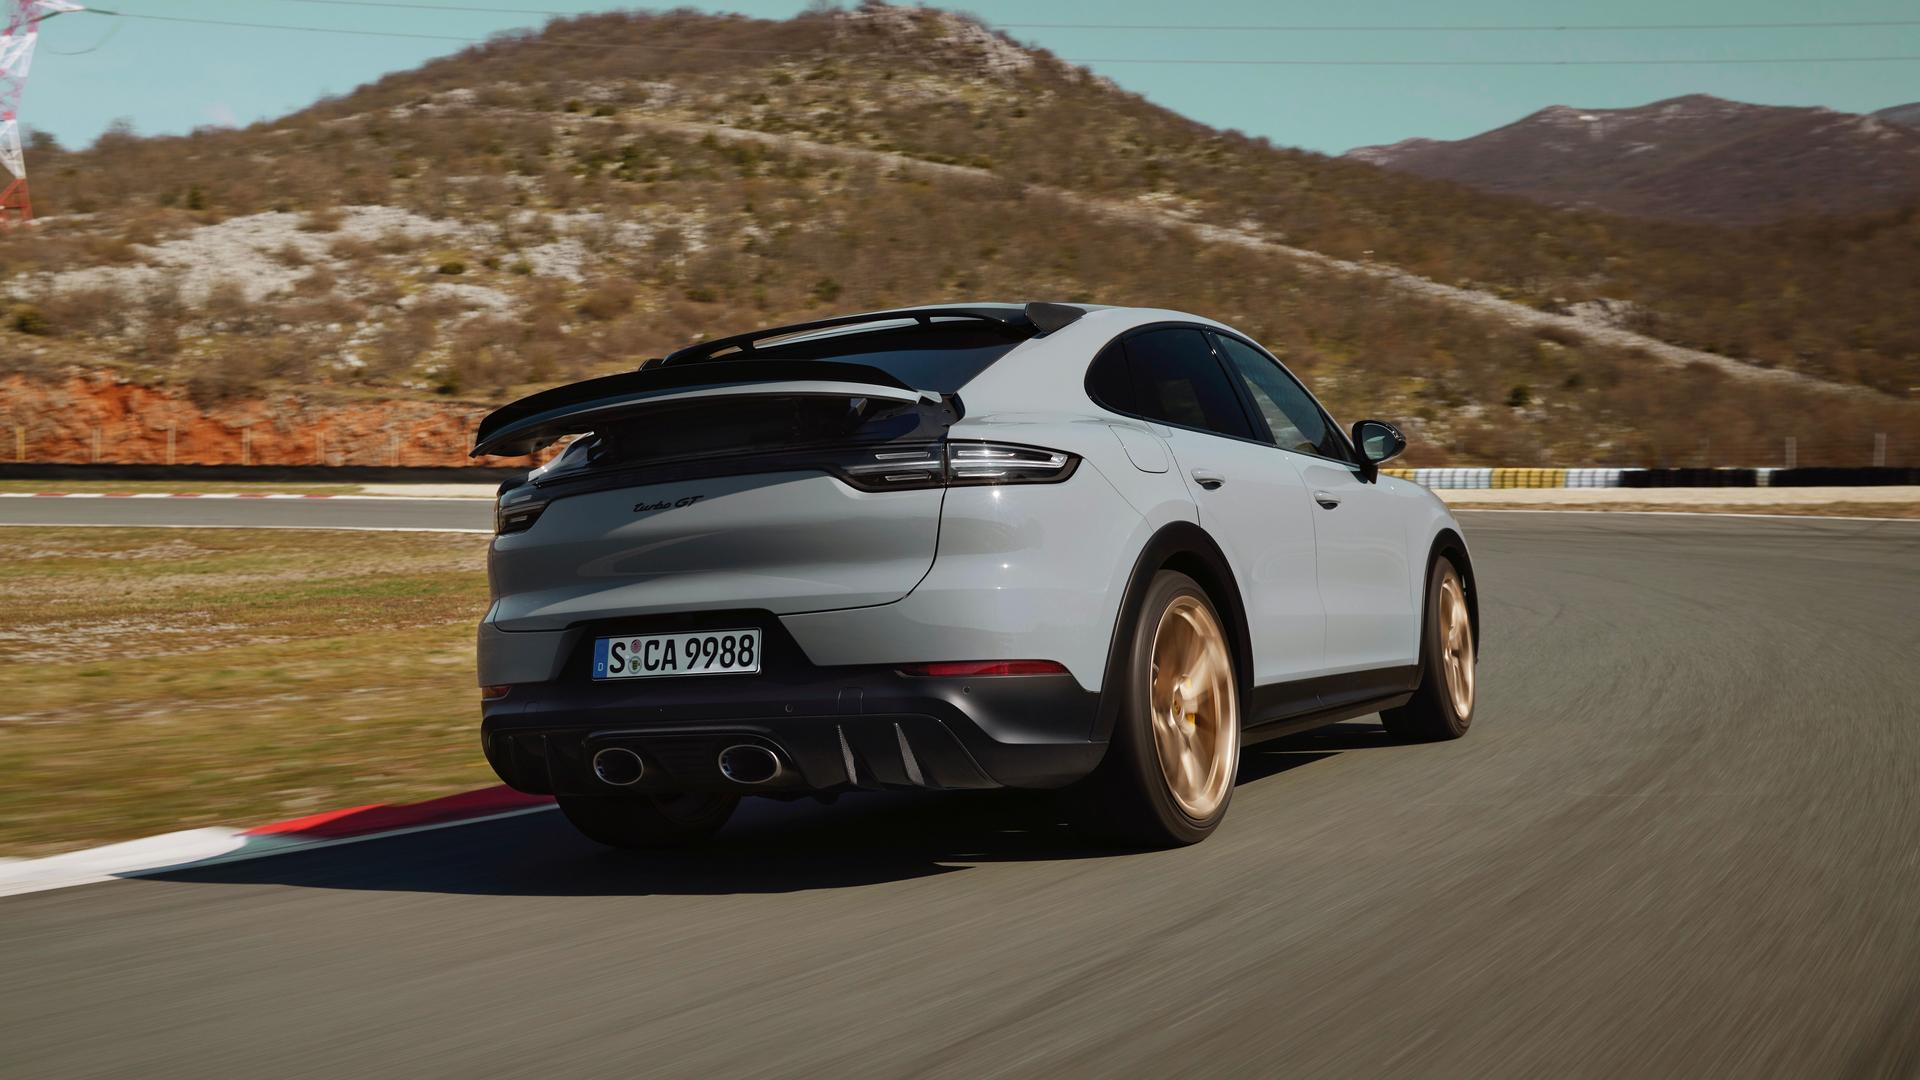 Fastest SUV on the Nurburgring: The new Porsche Cayenne Turbo GT (Urus Rival)